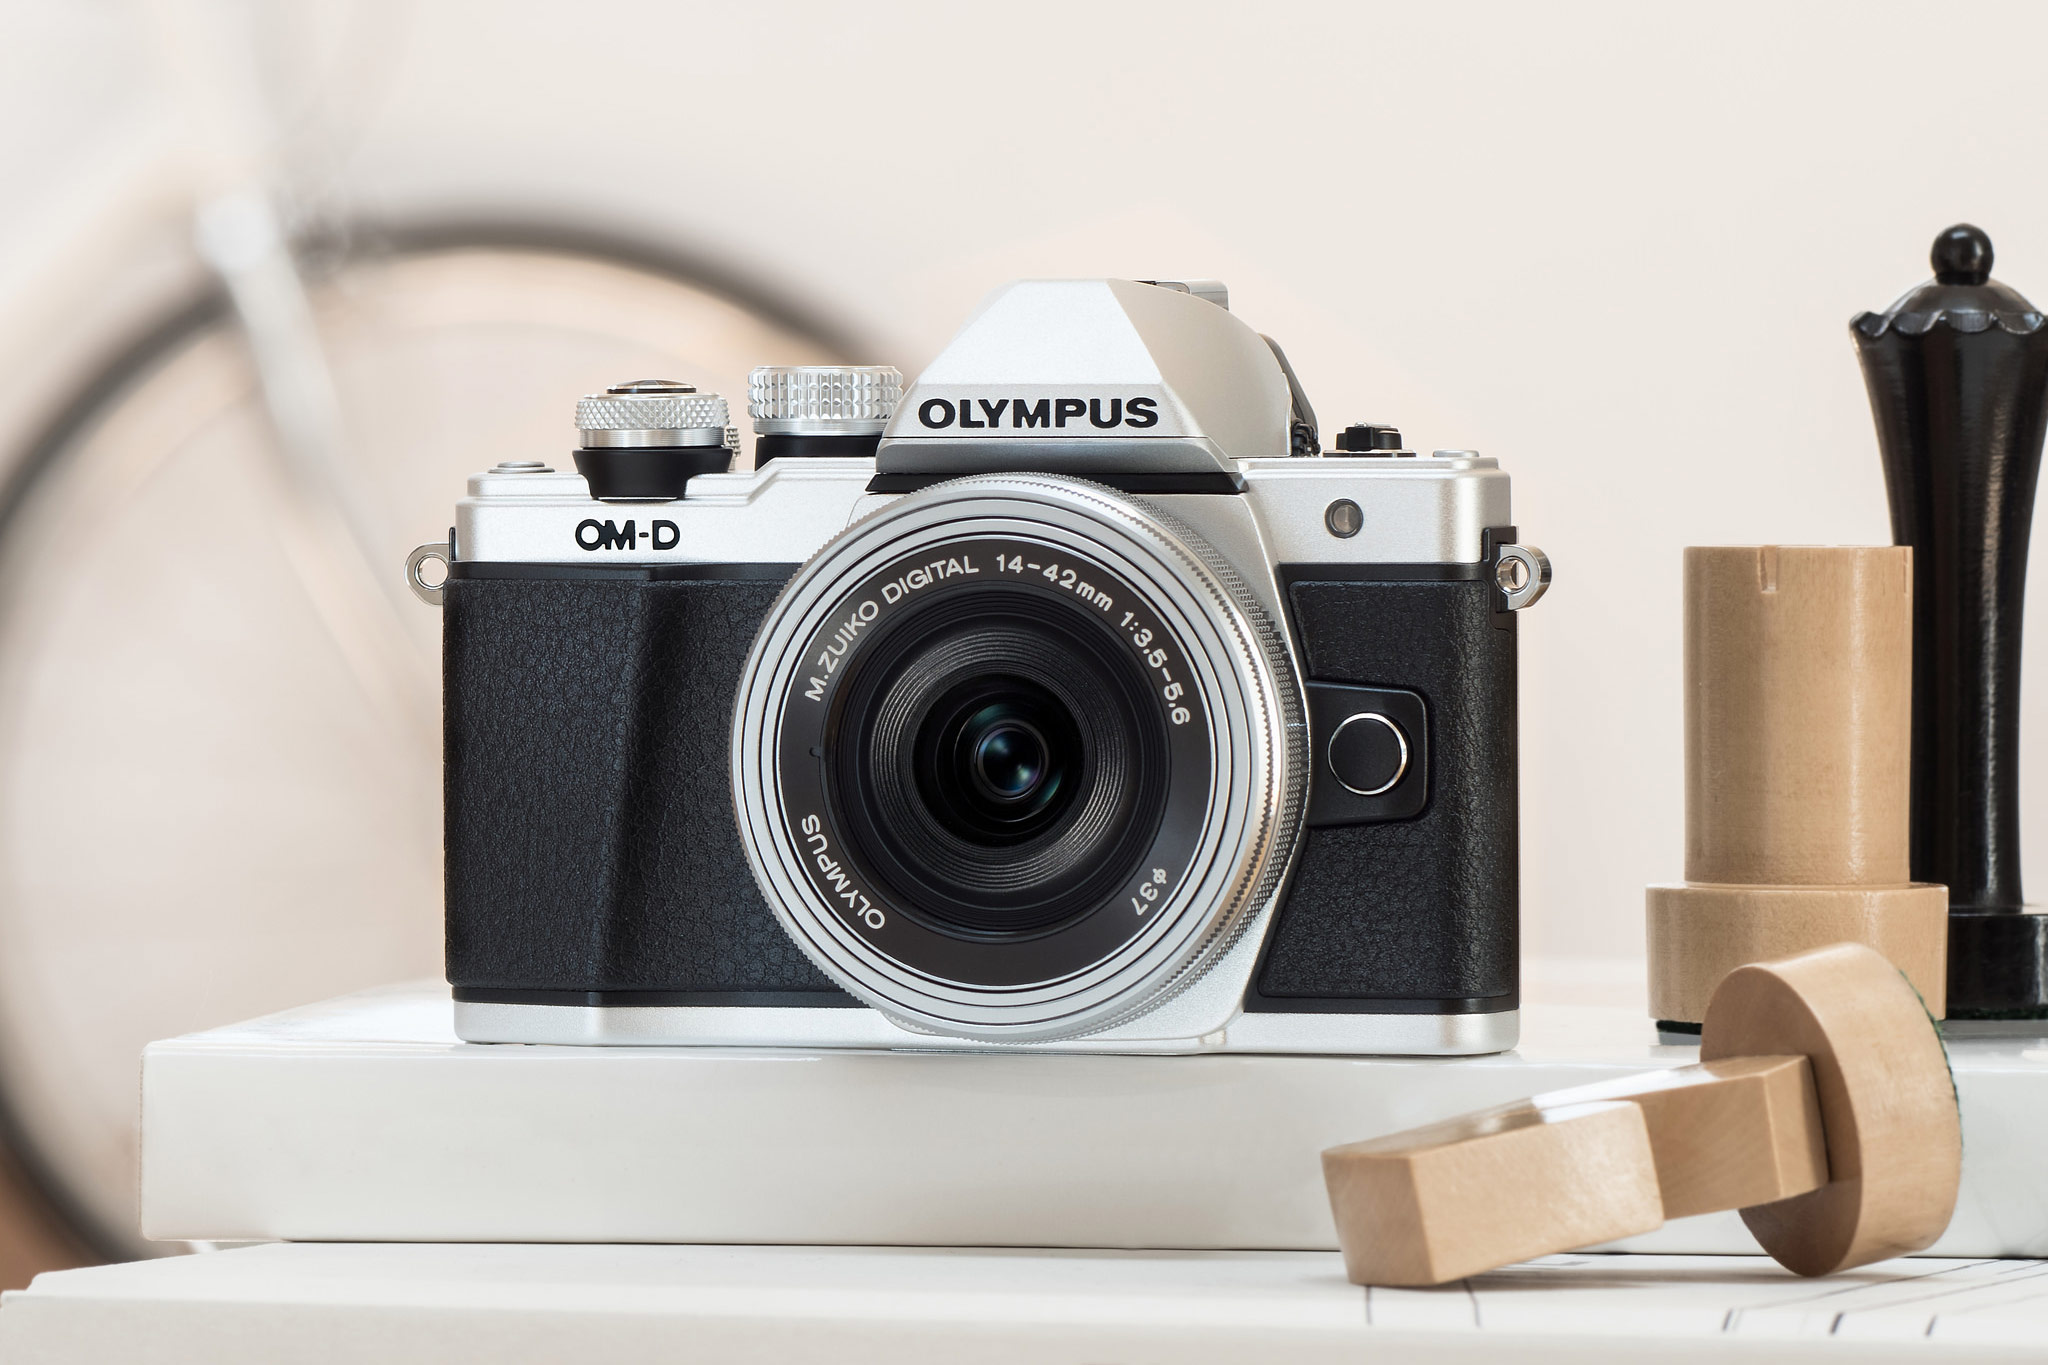 Olympus OM-D E-M10 Mark II vs Olympus OM-D E-M10 – The 9 Key Differences